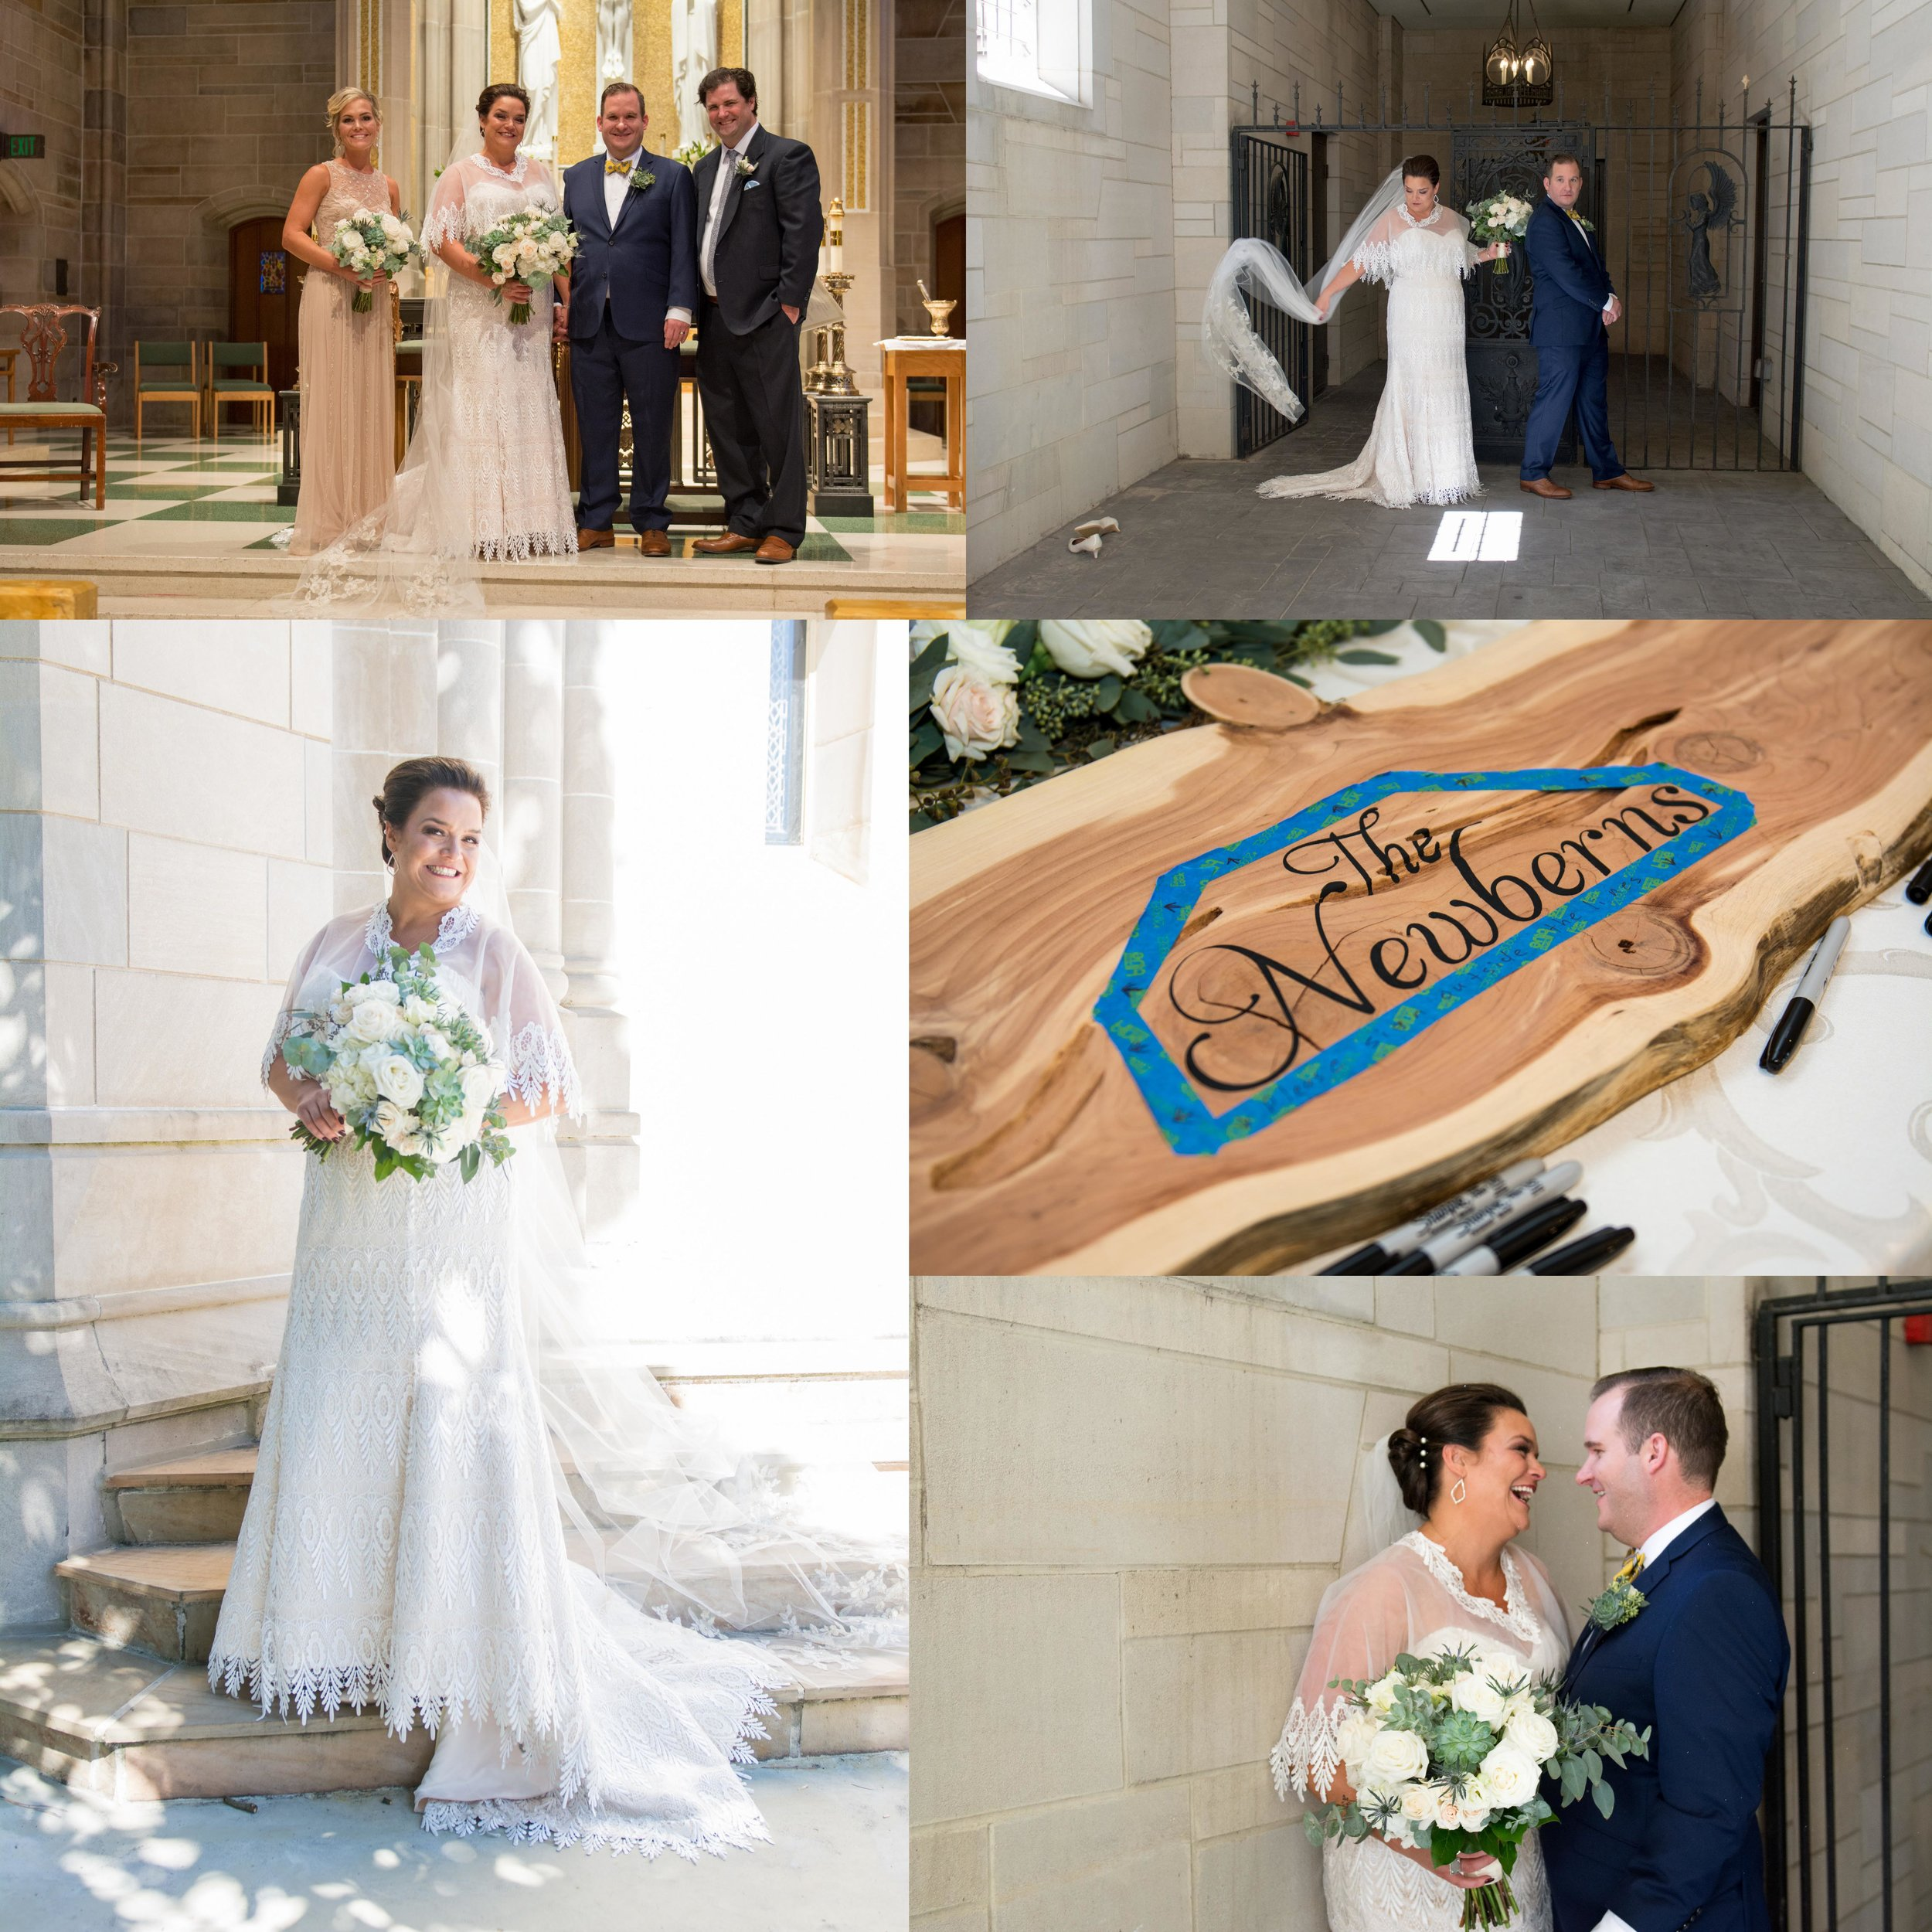 Megan and Mark Newbern Wedding Ceremony - October 2018